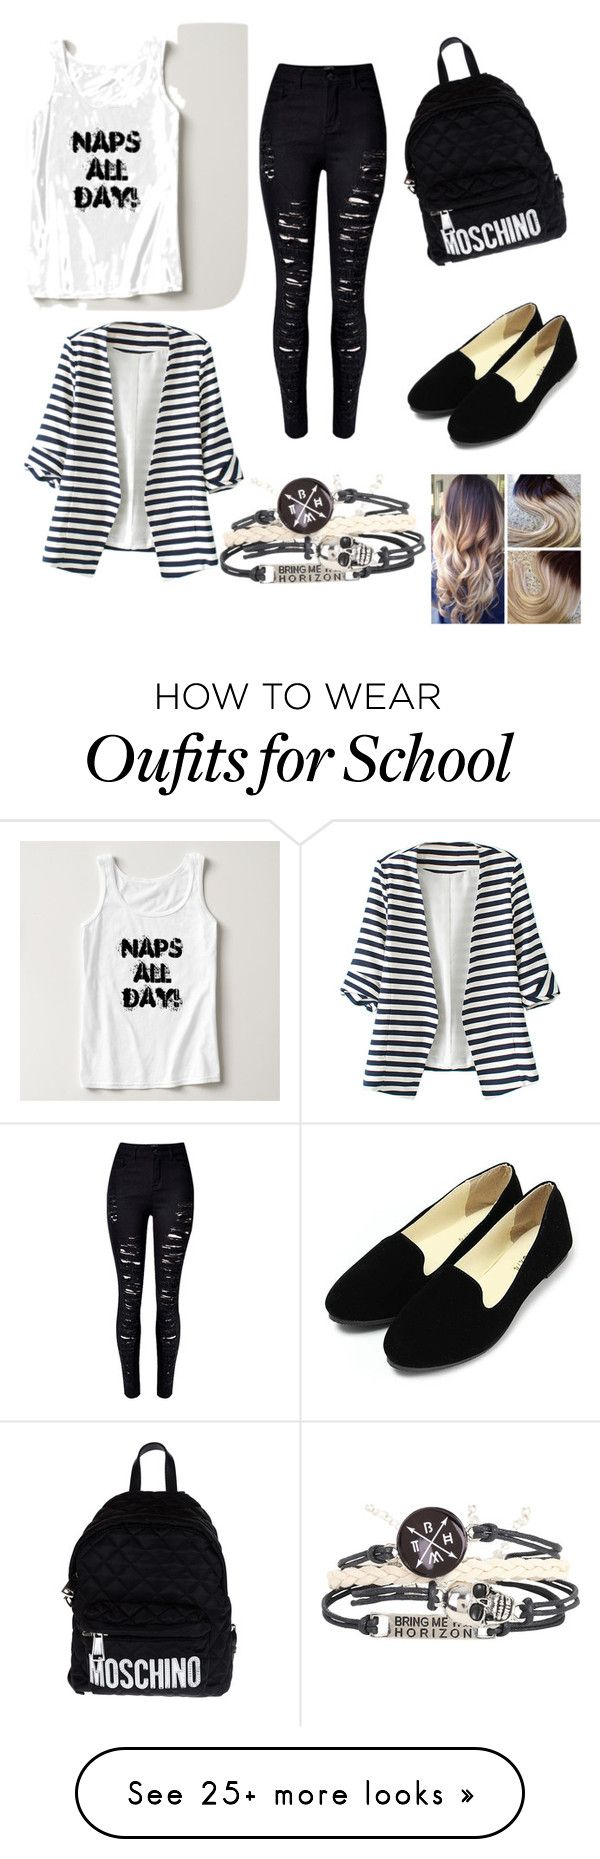 """School Outfit"" by oanacode on Polyvore featuring Moschino, WithChic, women's clothing, women's fashion, women, female, woman, misses and juniors"